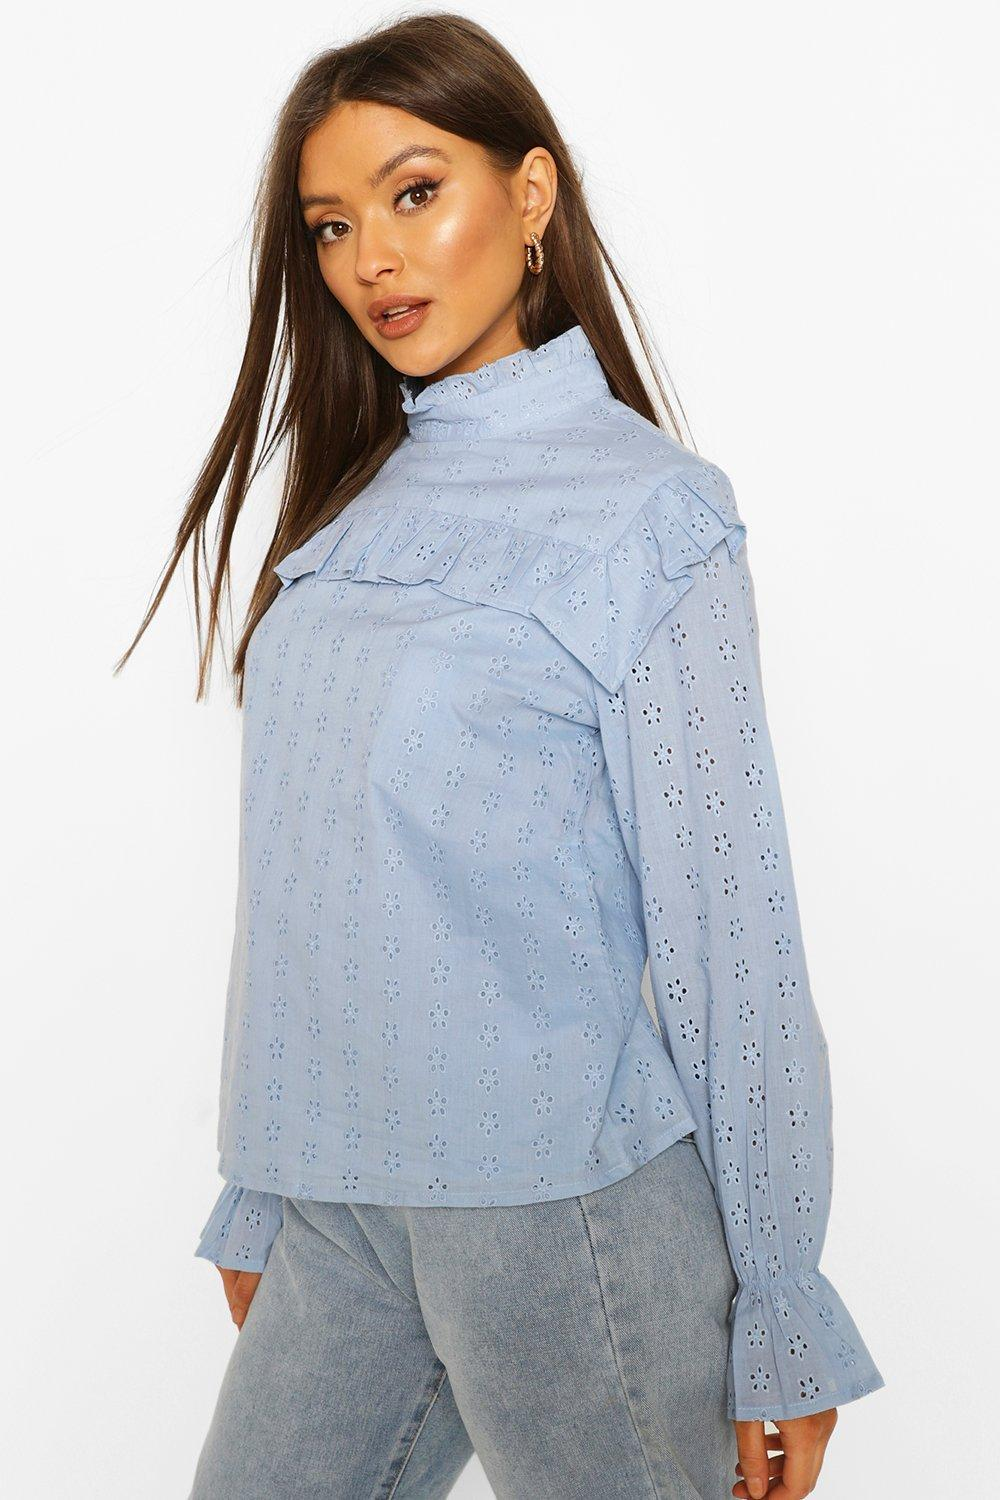 boohoo Womens Broderie Anglaise Frill Blouse - Blue - 10, Blue